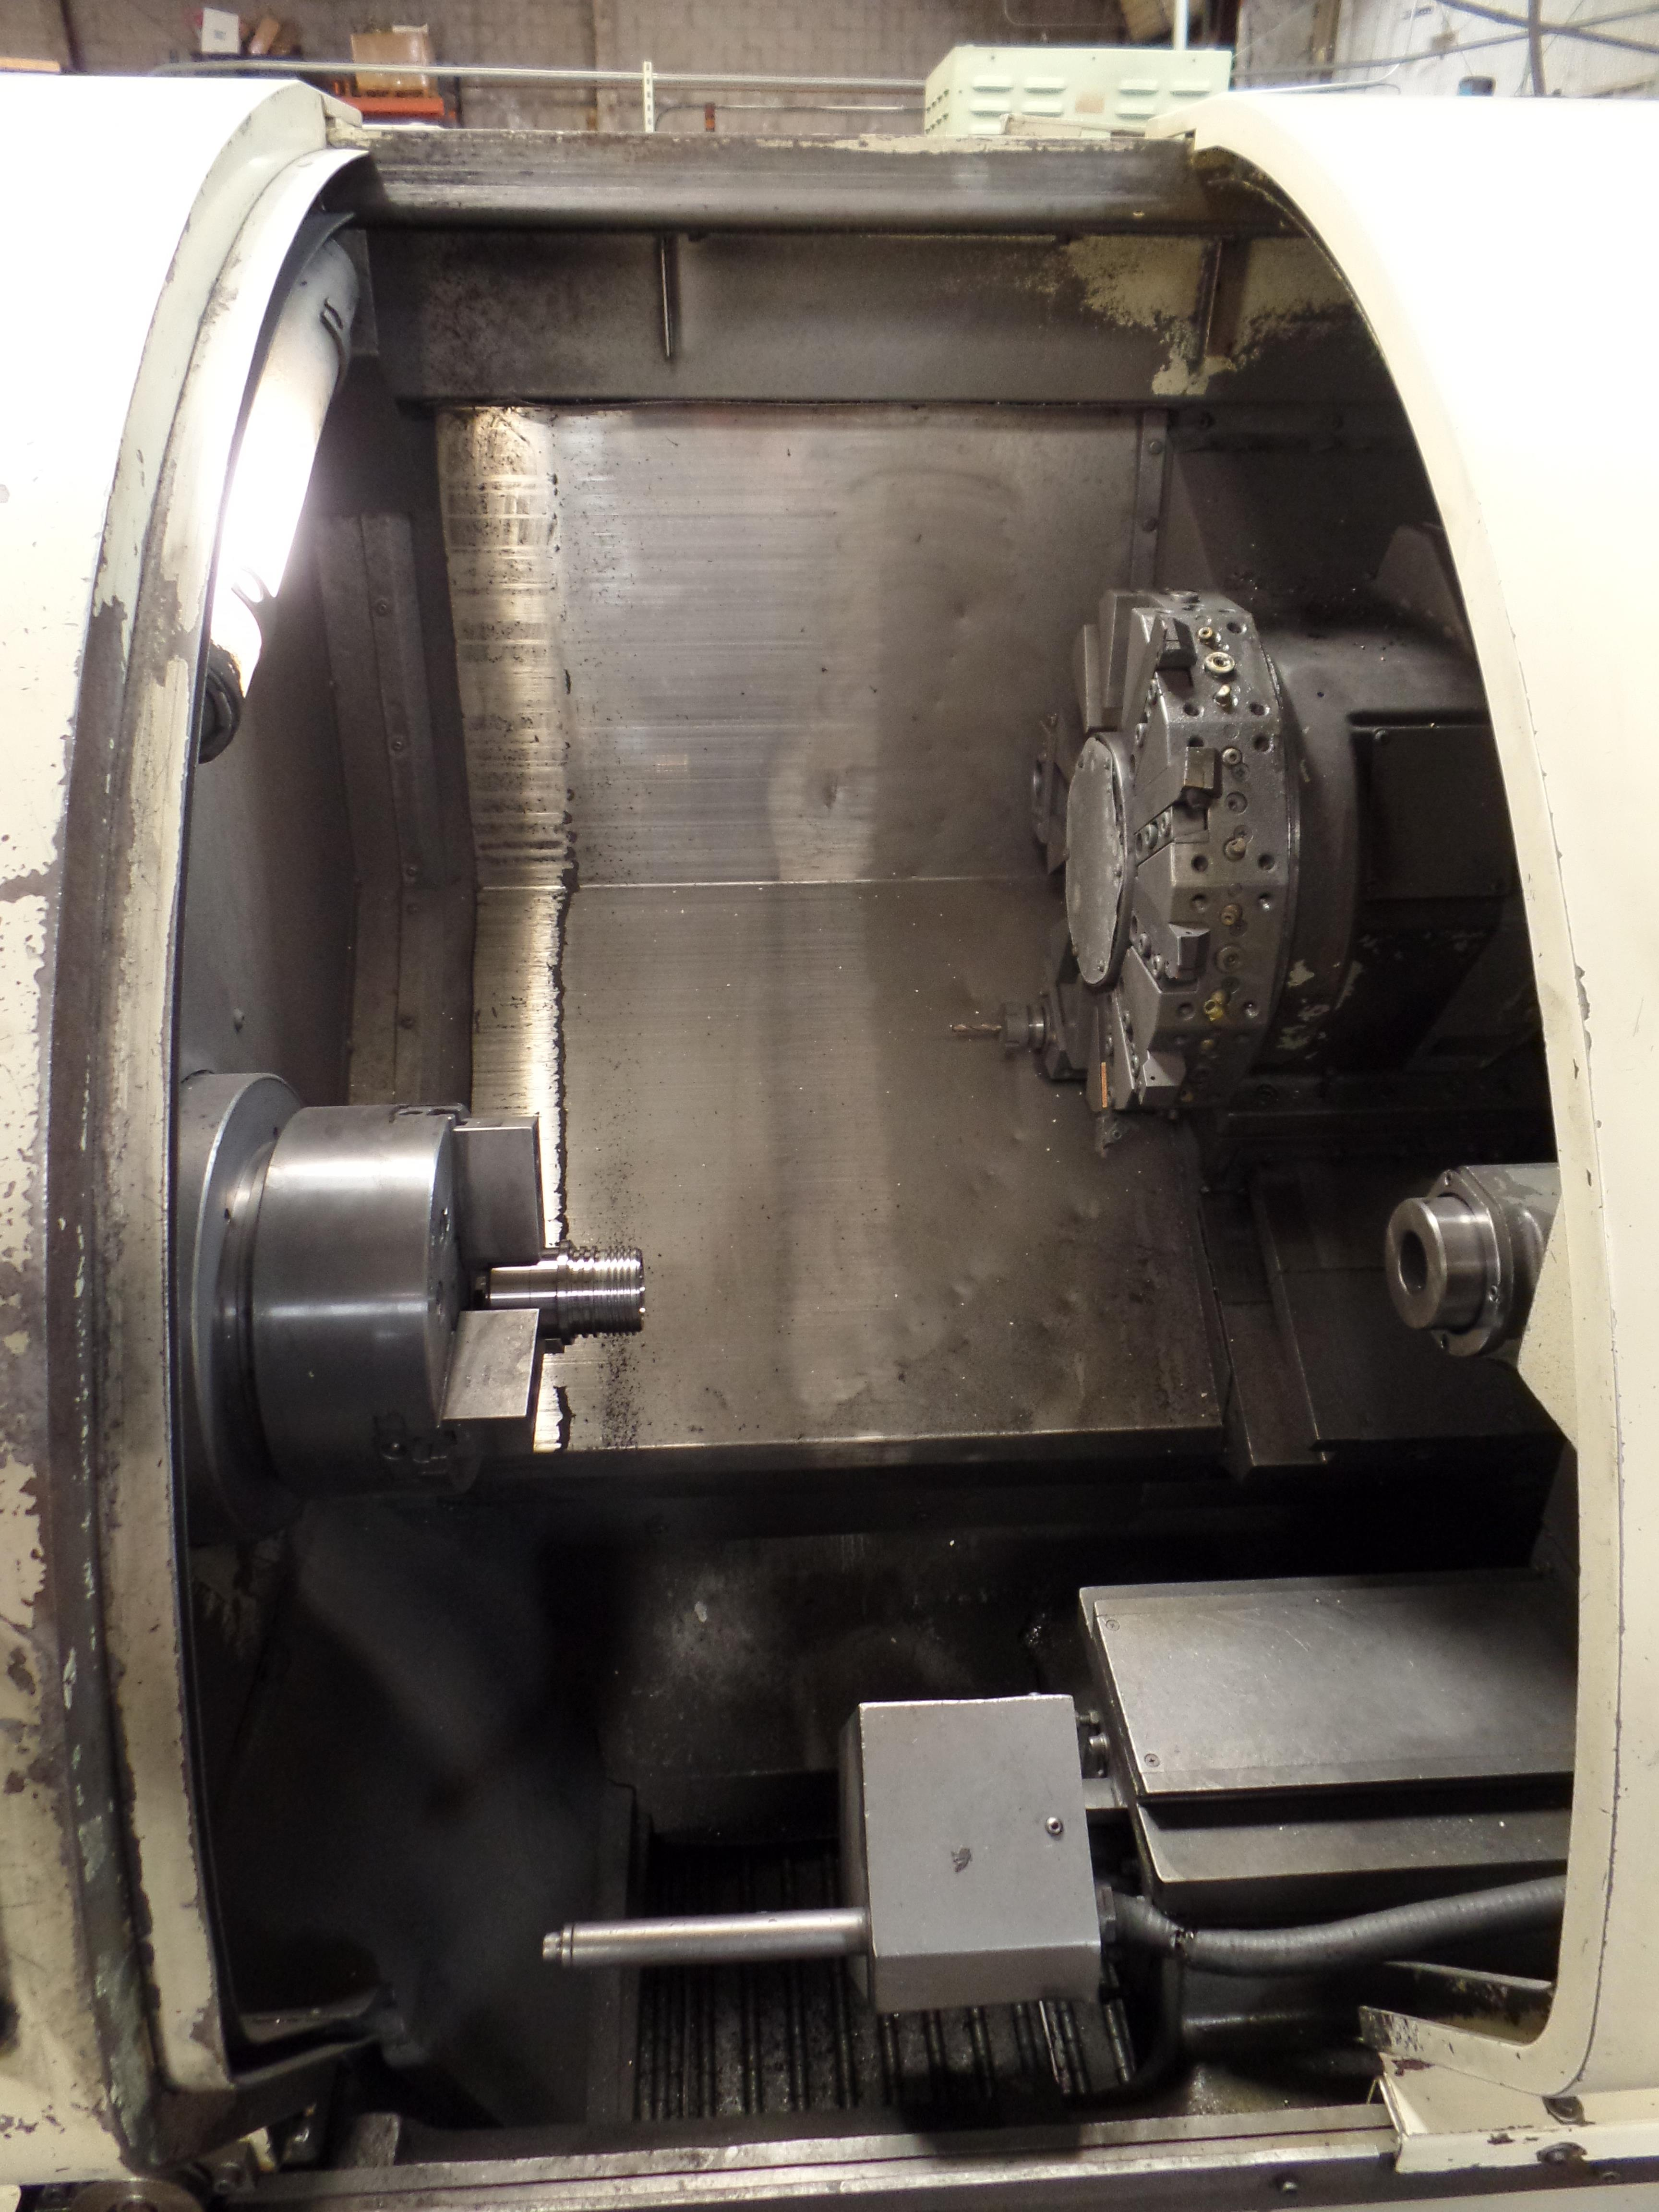 1999 Okuma Crown 762SBB big bore 2-axis CNC turning center with LNS bar feed, OSP700L control, parts - Image 14 of 16